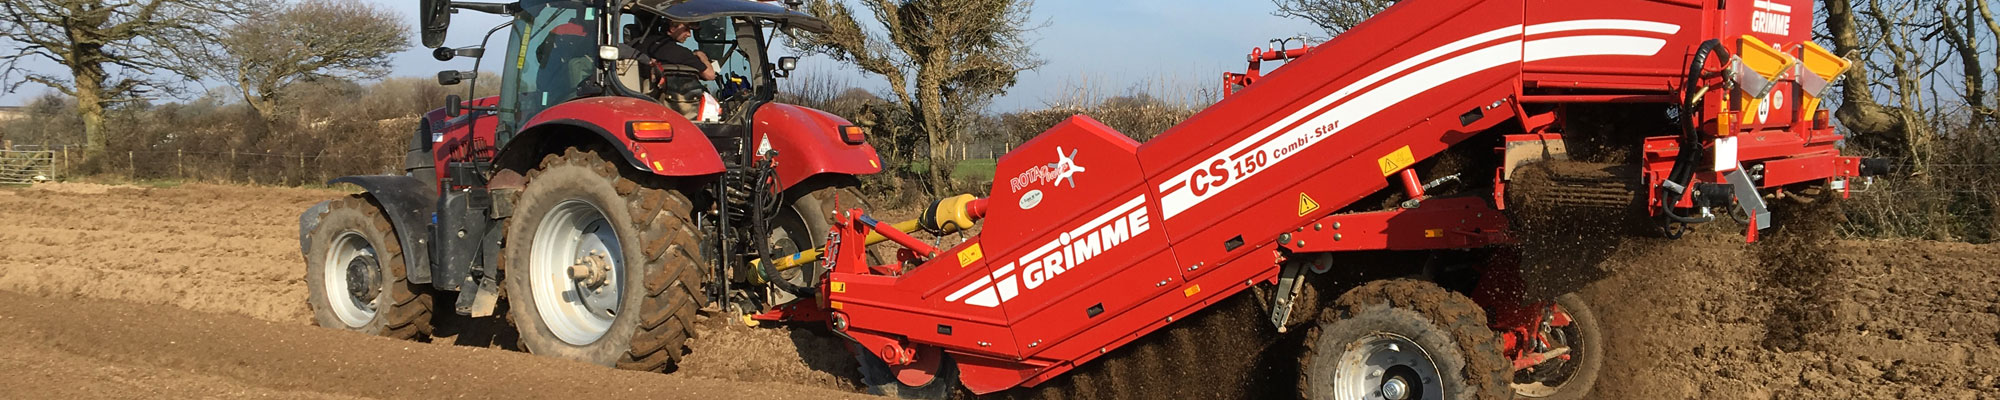 Grimme Potato, Beet & Vegetable Technology